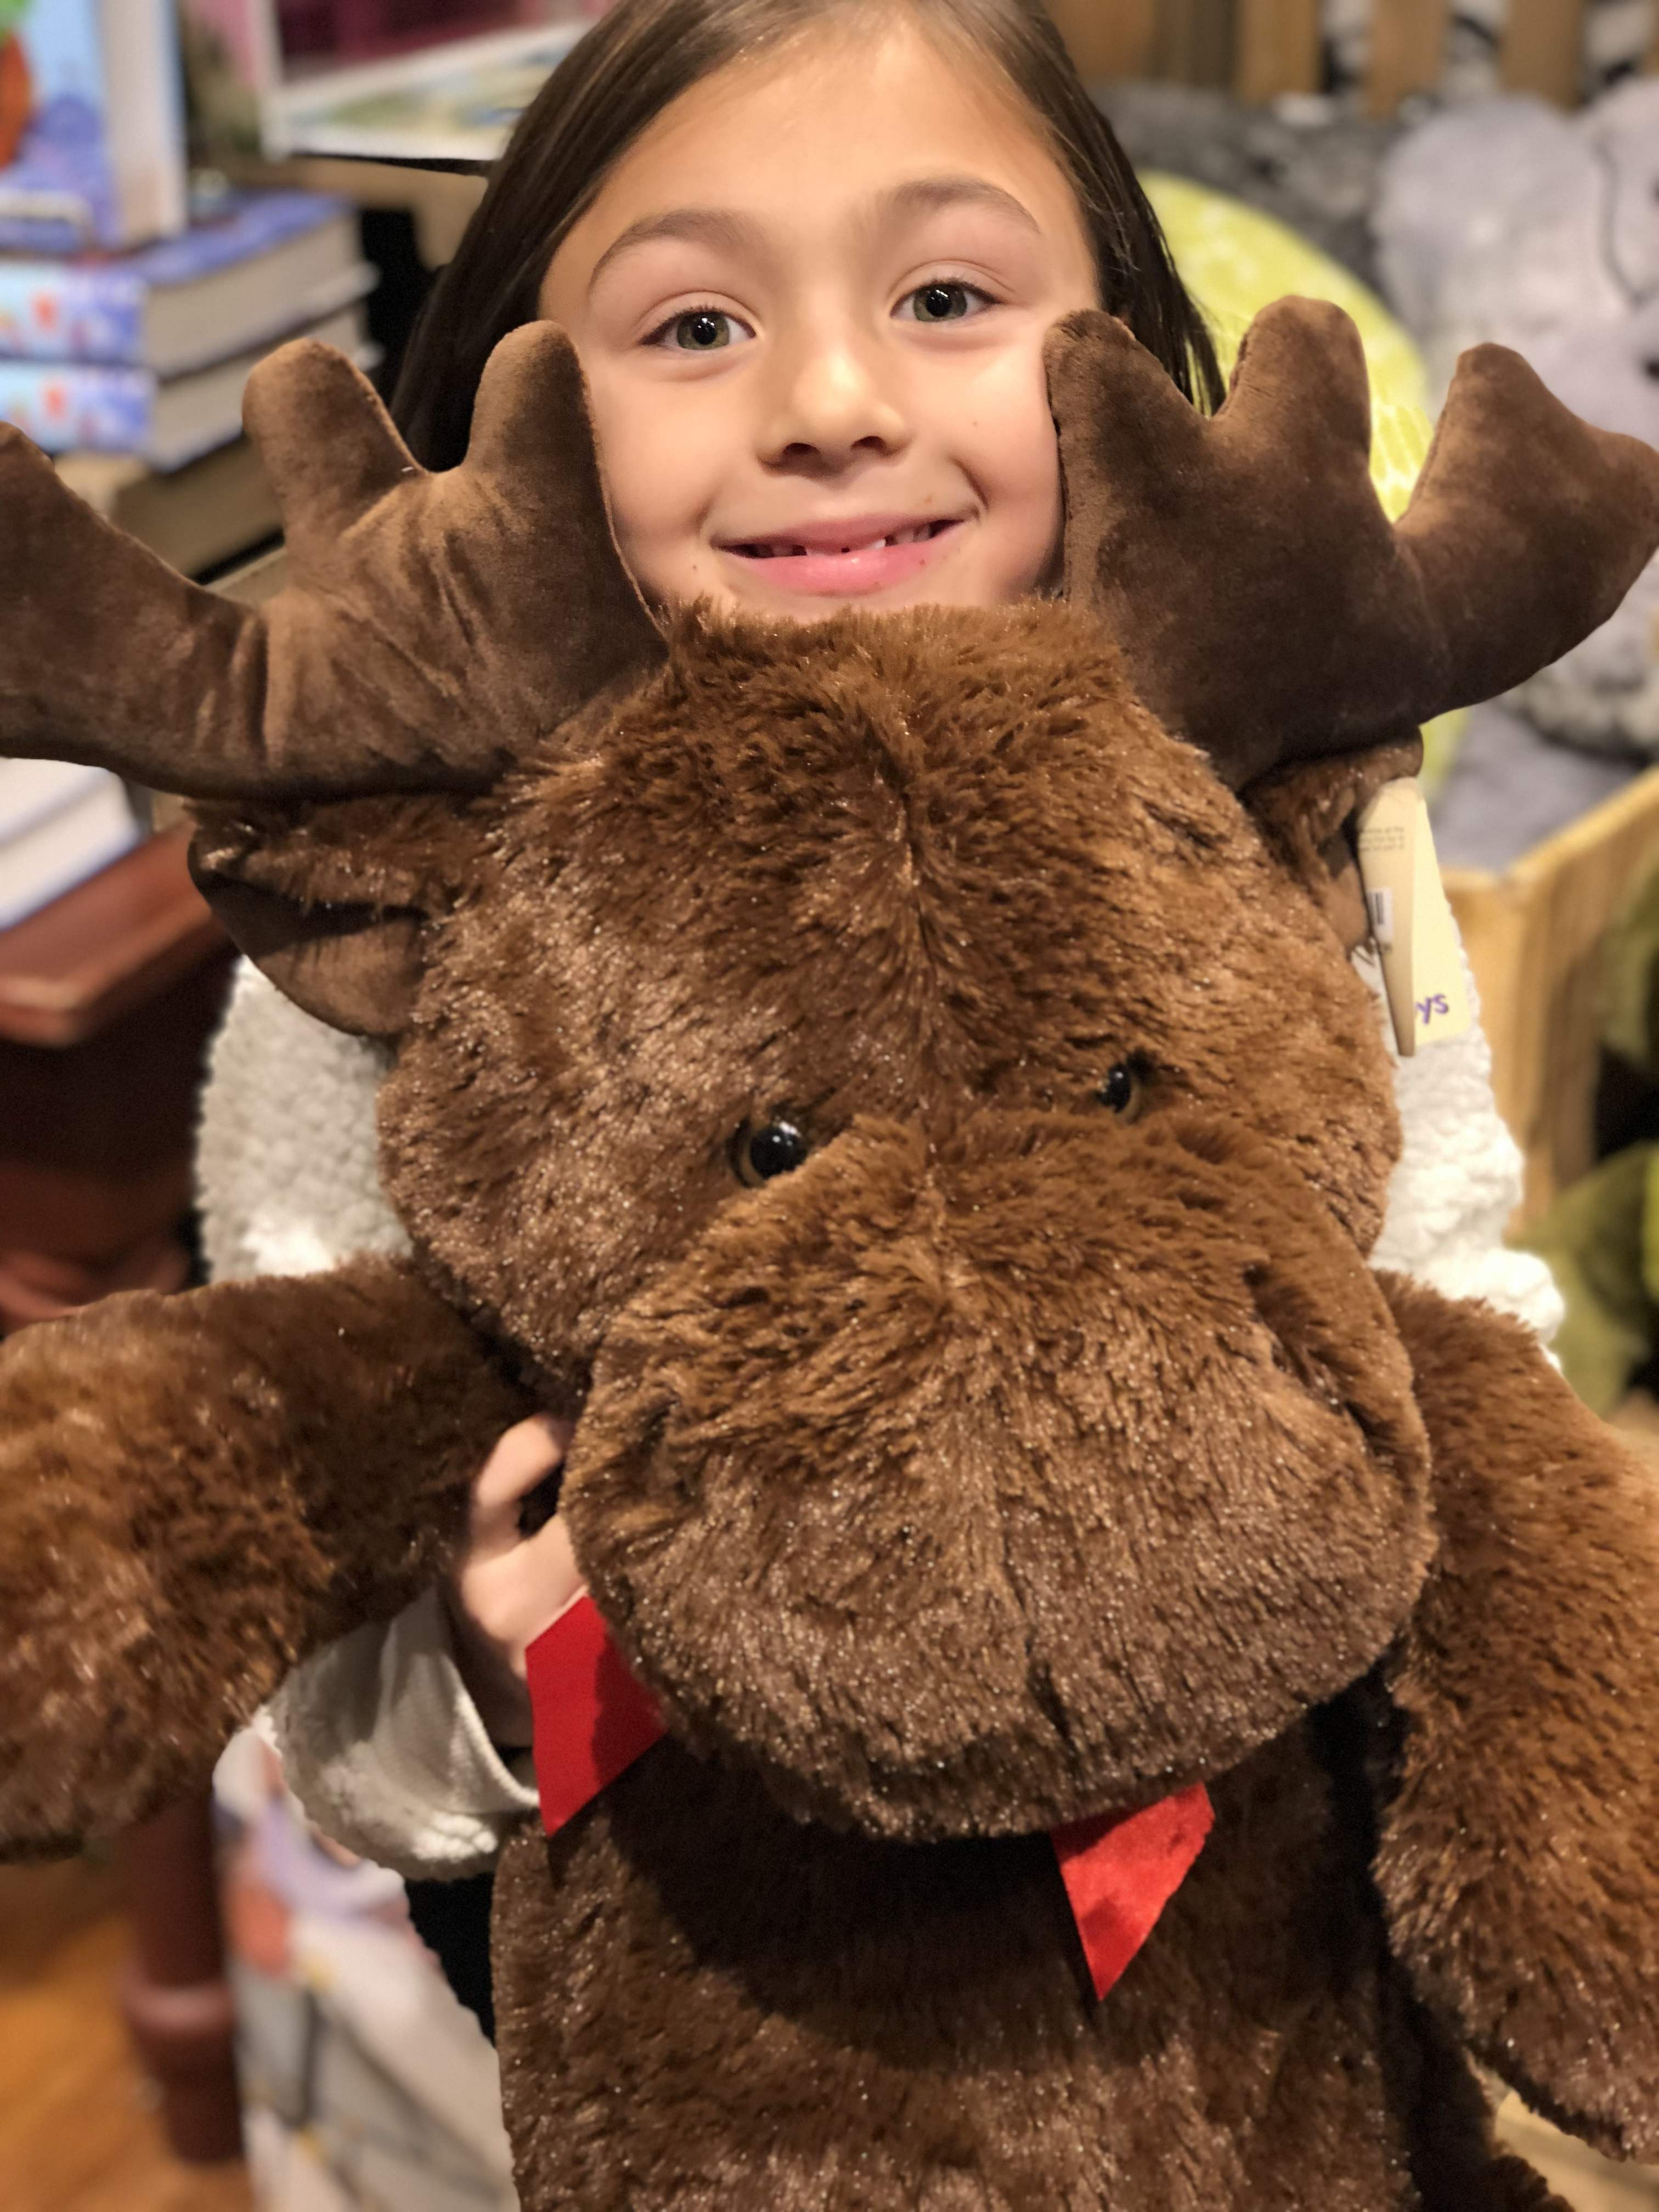 Surprising holiday gifts at Cracker Barrel: Stuffed animal moose | sponsor